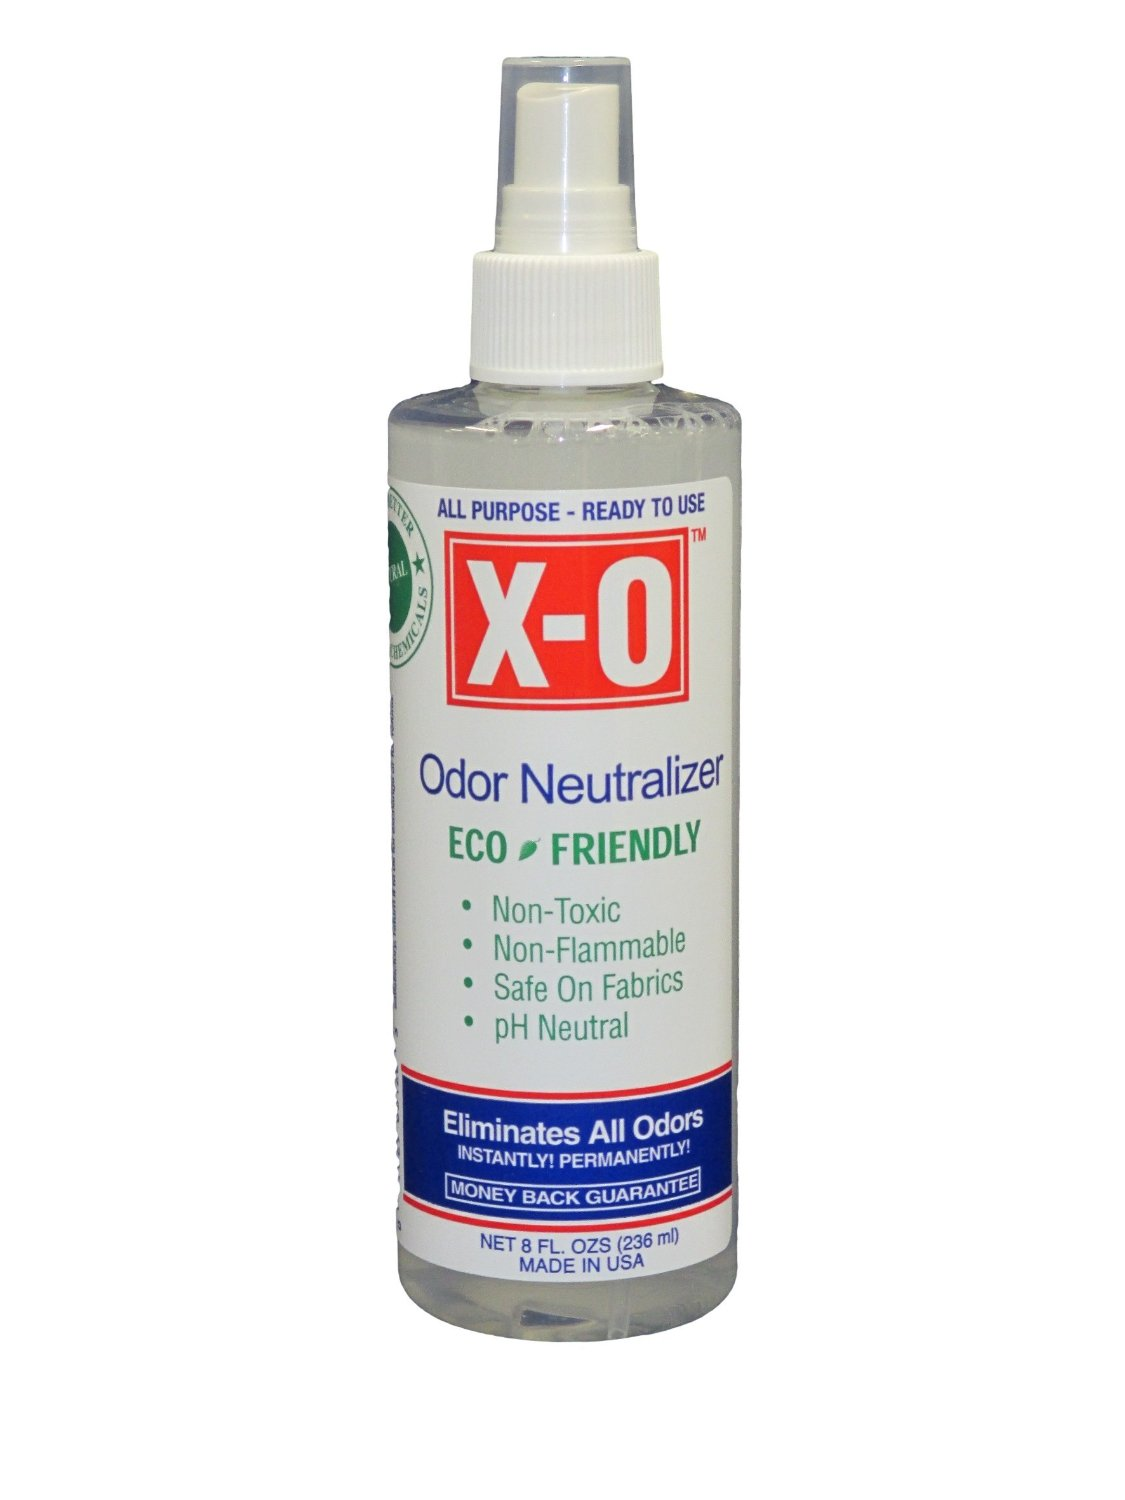 Best Odor Neutralizer For Home Xo With Ecofriedly With Non Toxic And Non  Flamable